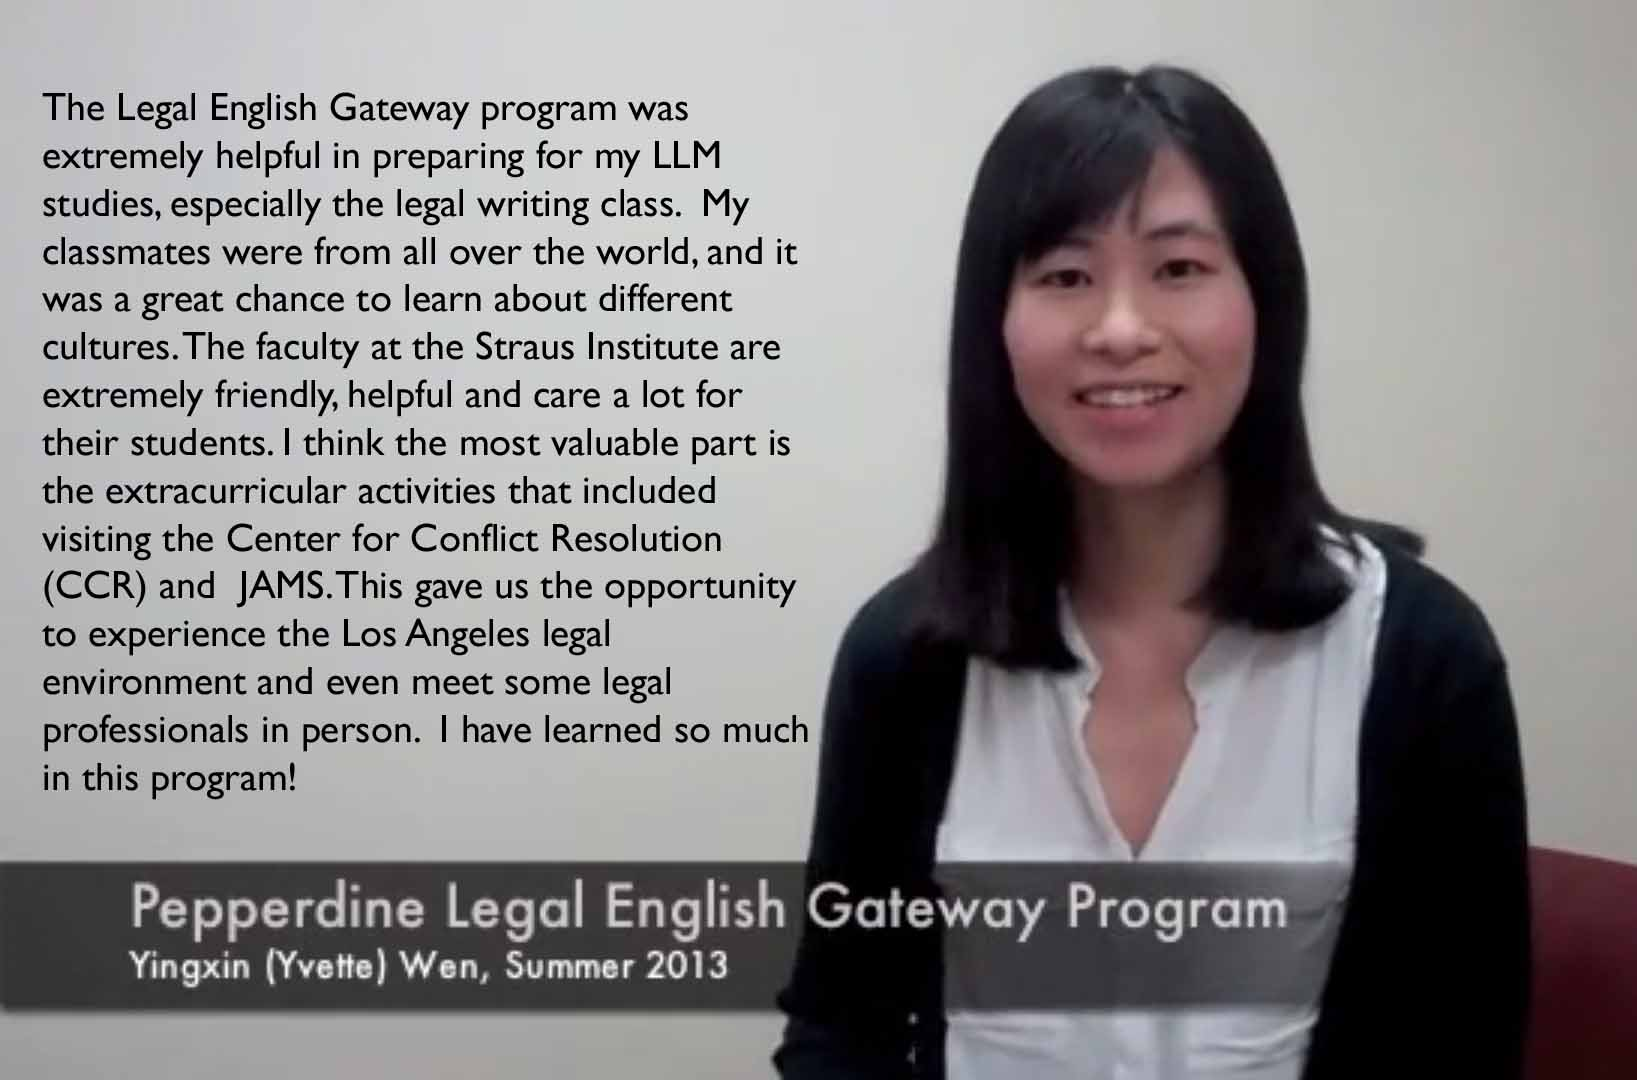 Legal English Gateway Quote